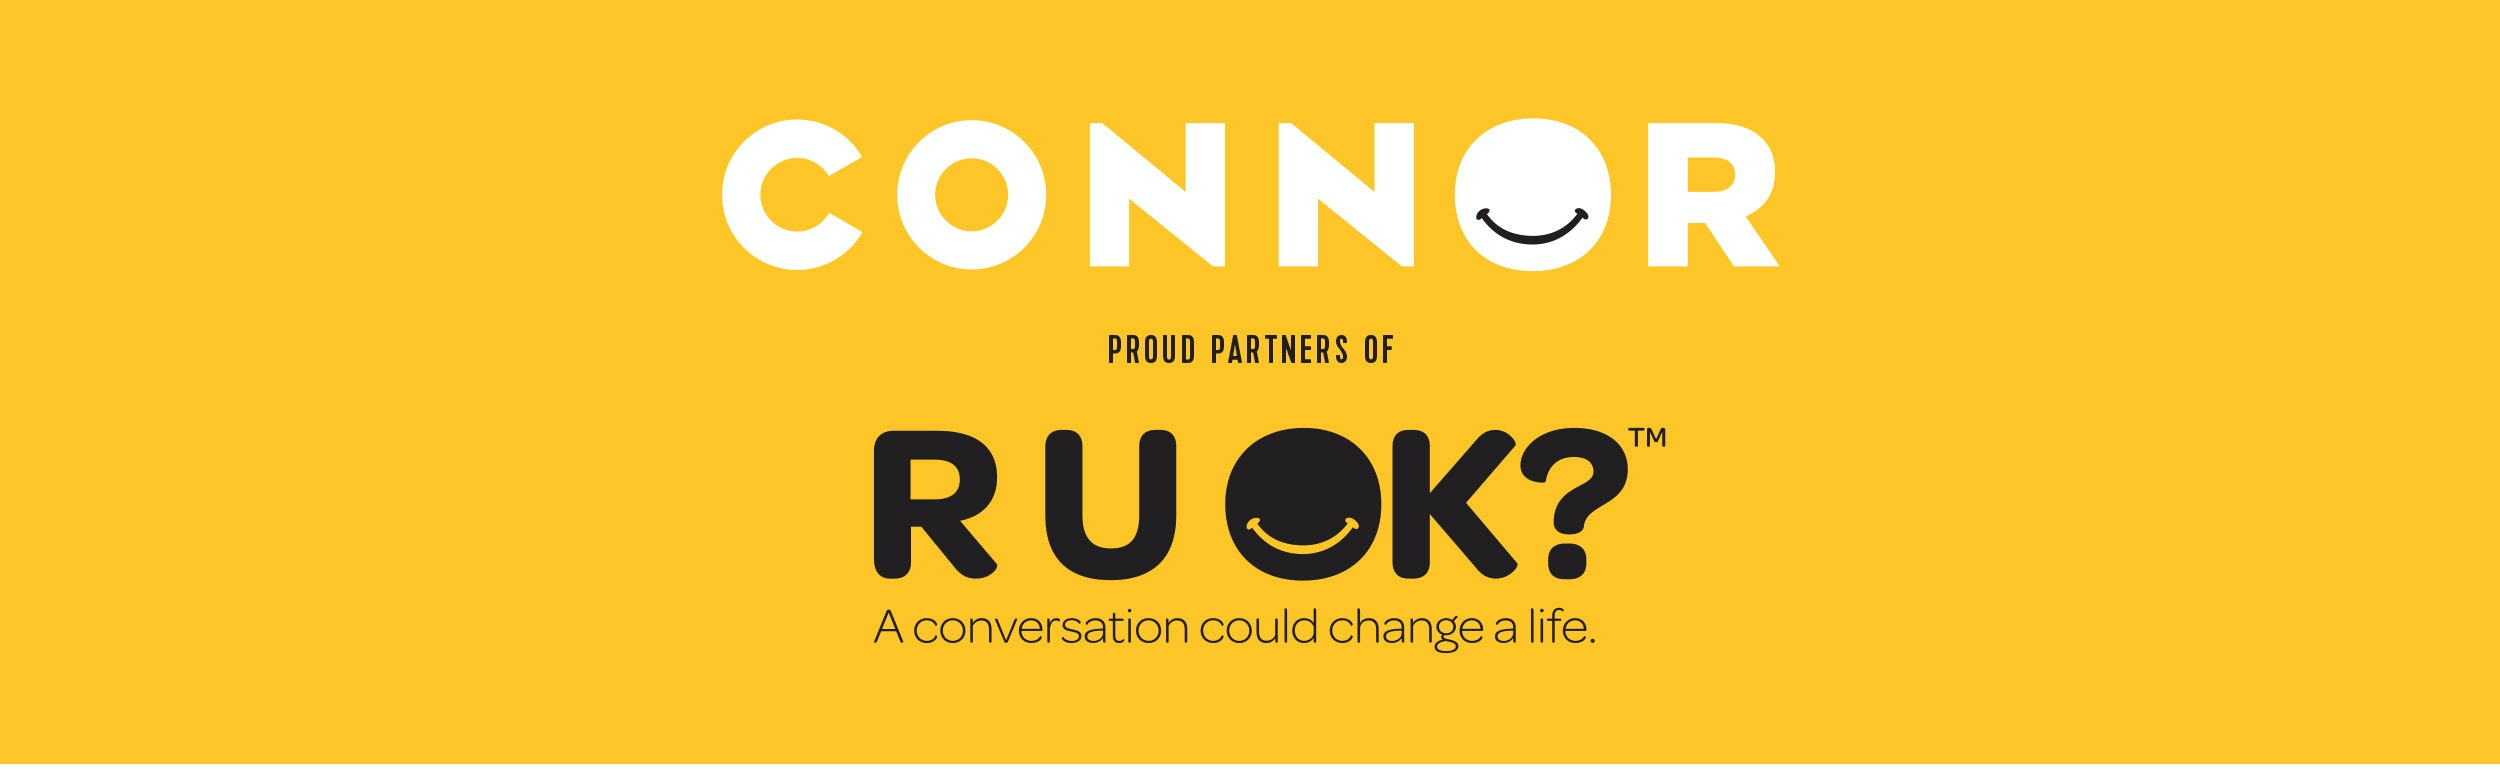 Connor proud partners of RUOK?